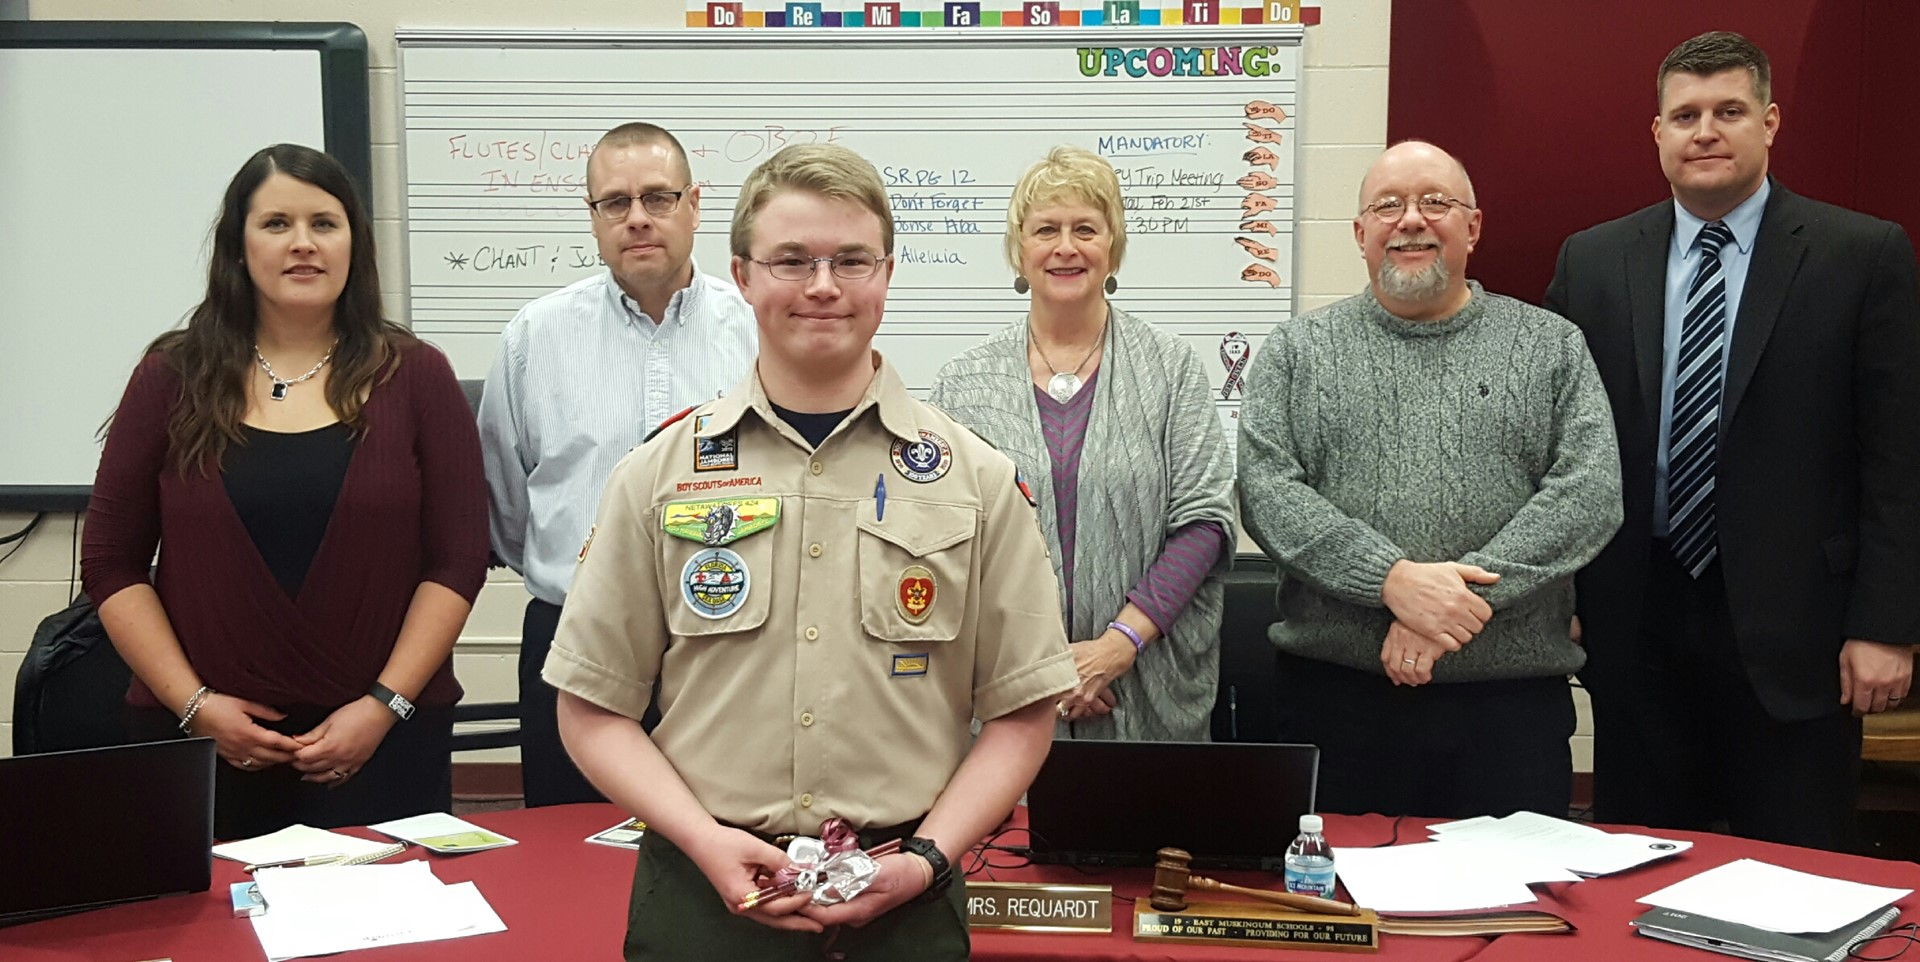 Connor Moore - a JGHS sophomore was recognized at the February Board of Education meeting as an Eagle Scout recipient